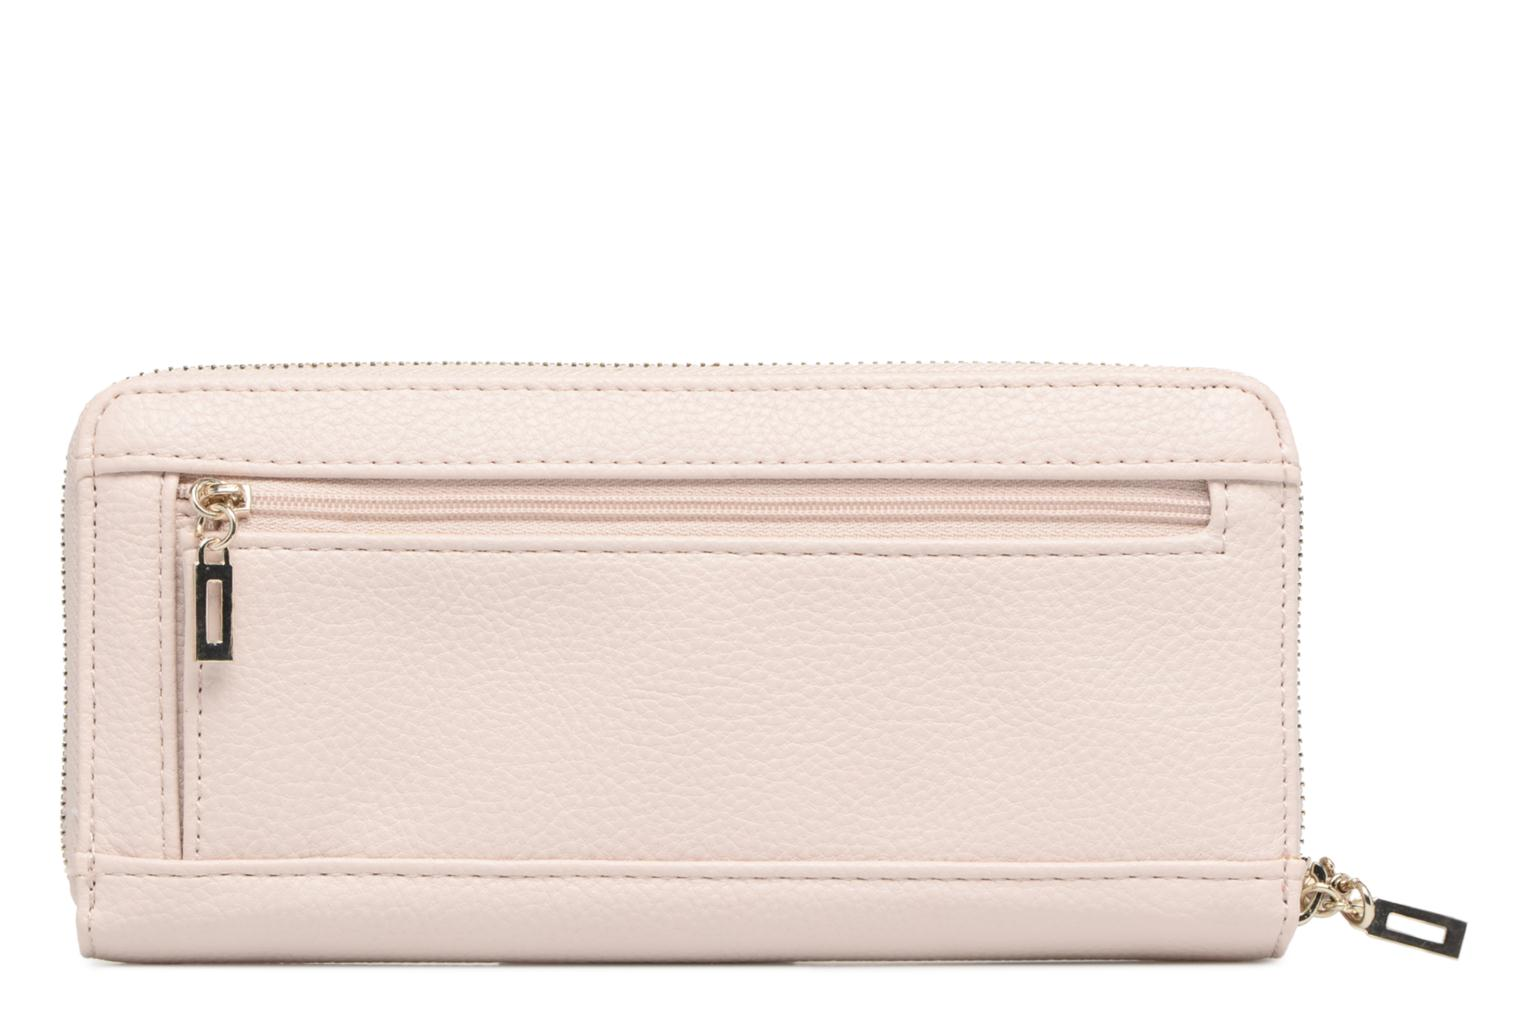 Luma SLG Large Zip Around BLUSH MULTI